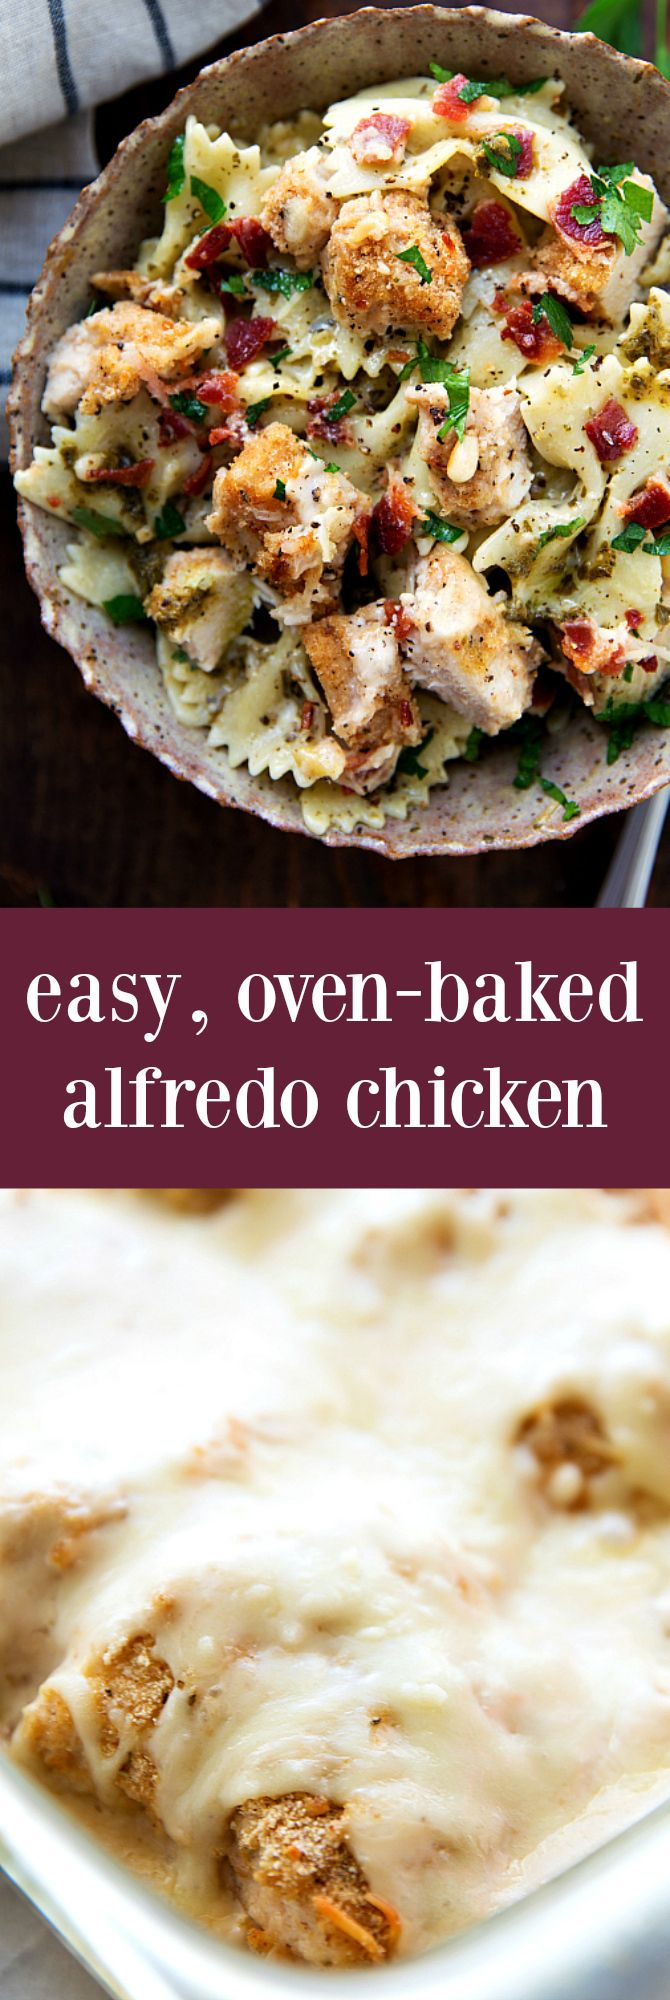 Super simple oven baked alfredo chicken with bacon and an optional pesto pasta to serve with it!